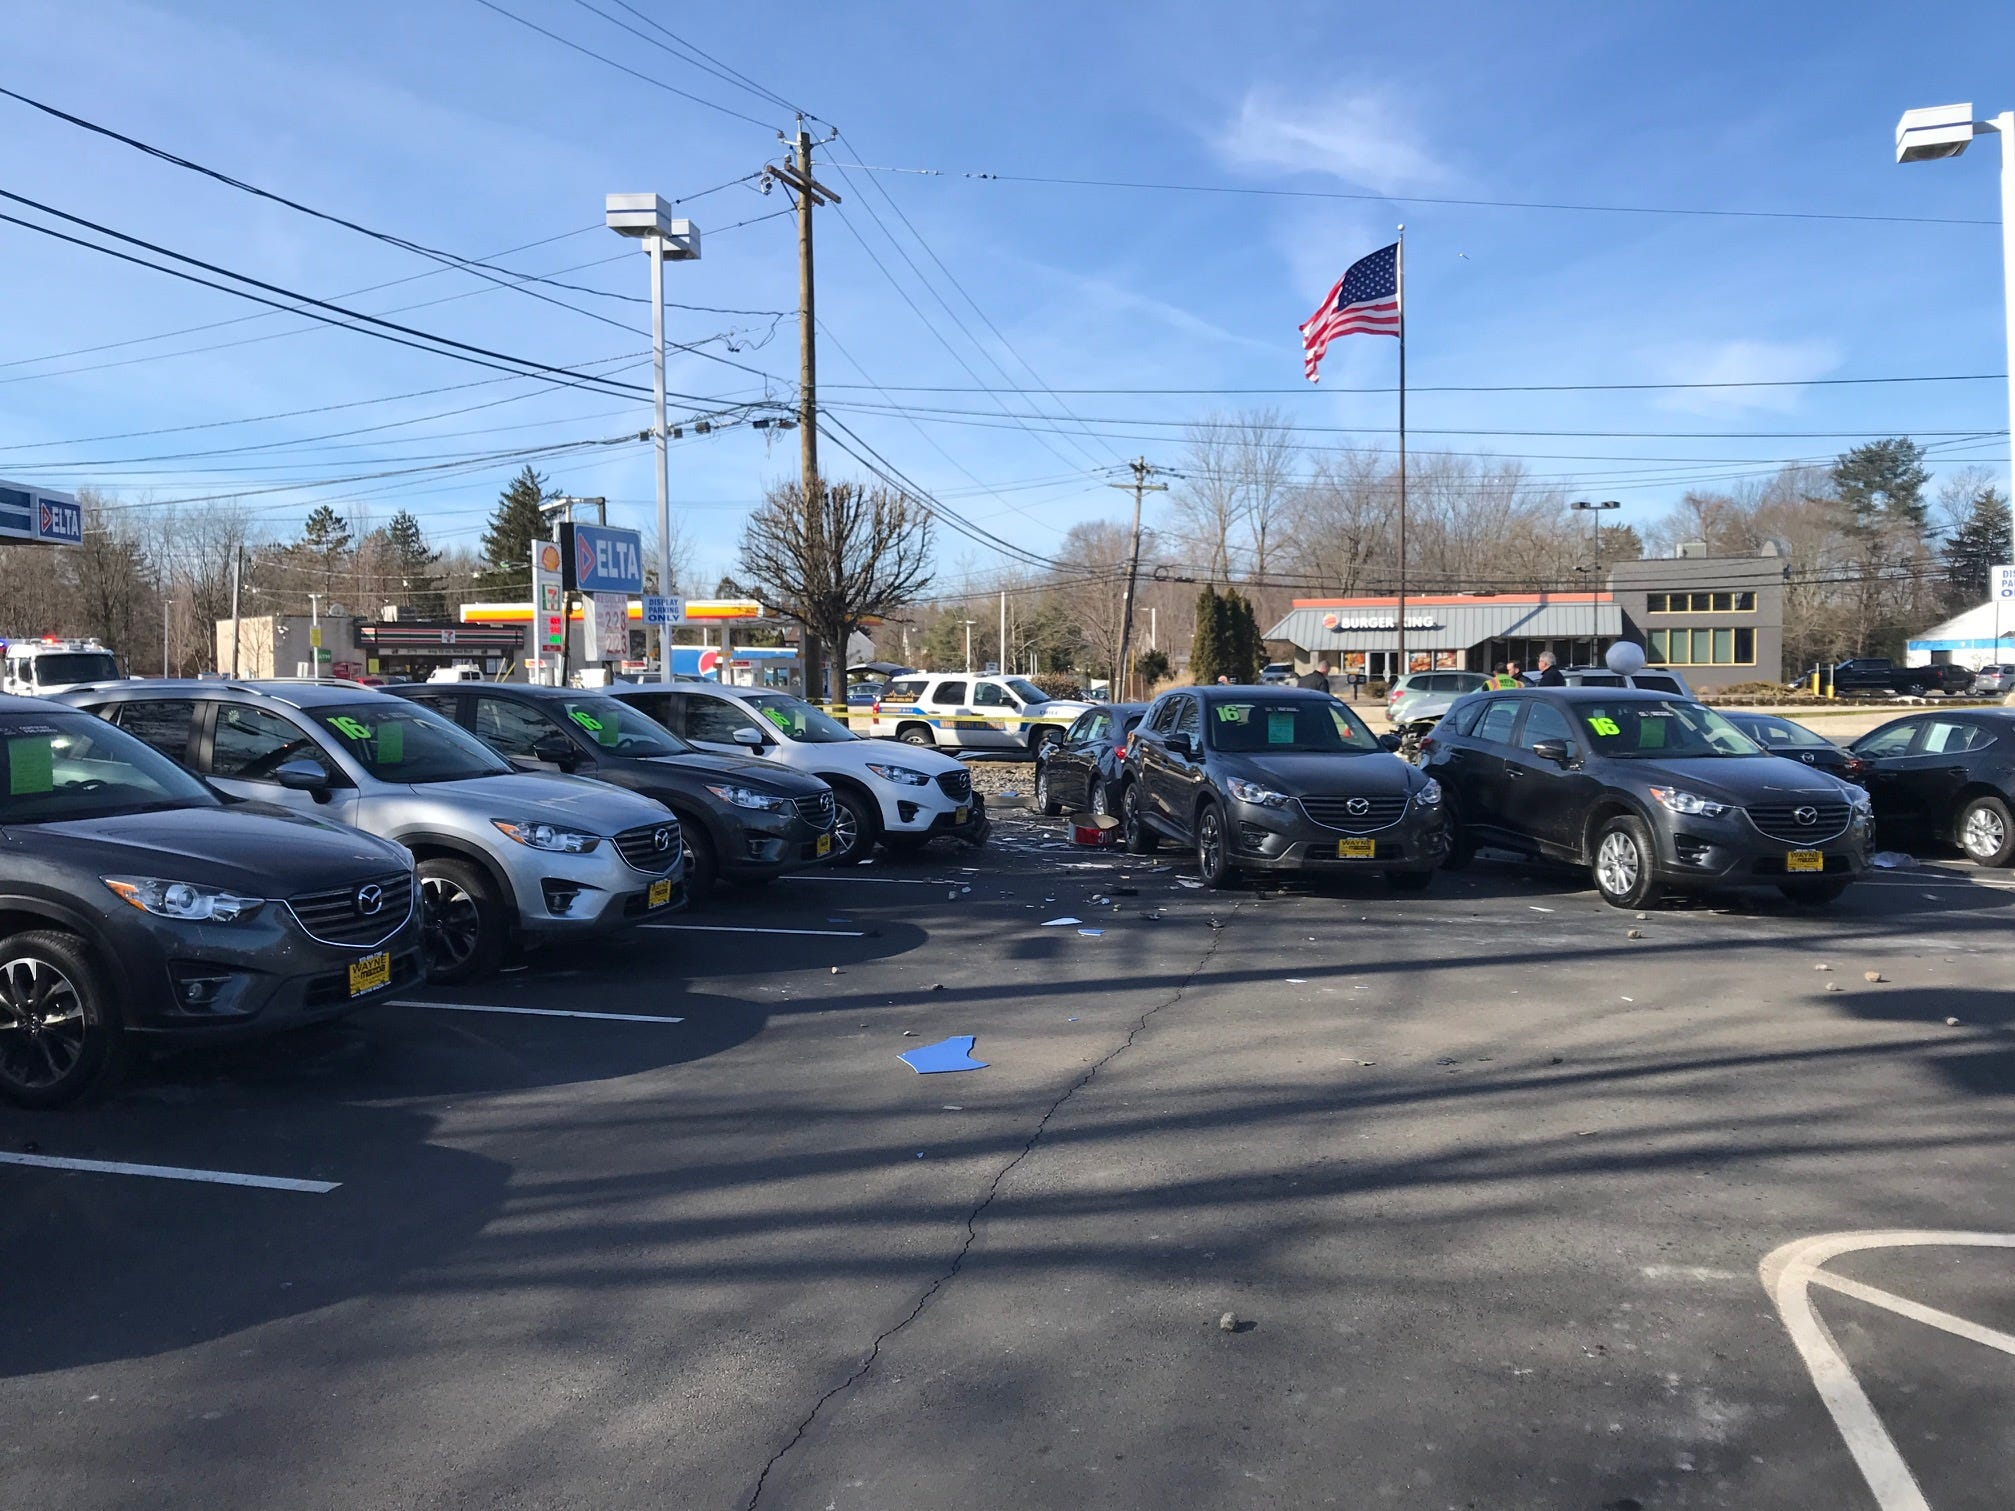 Several cars at Wayne Mazda were damaged by flying debris after a serious collision on Route 23.